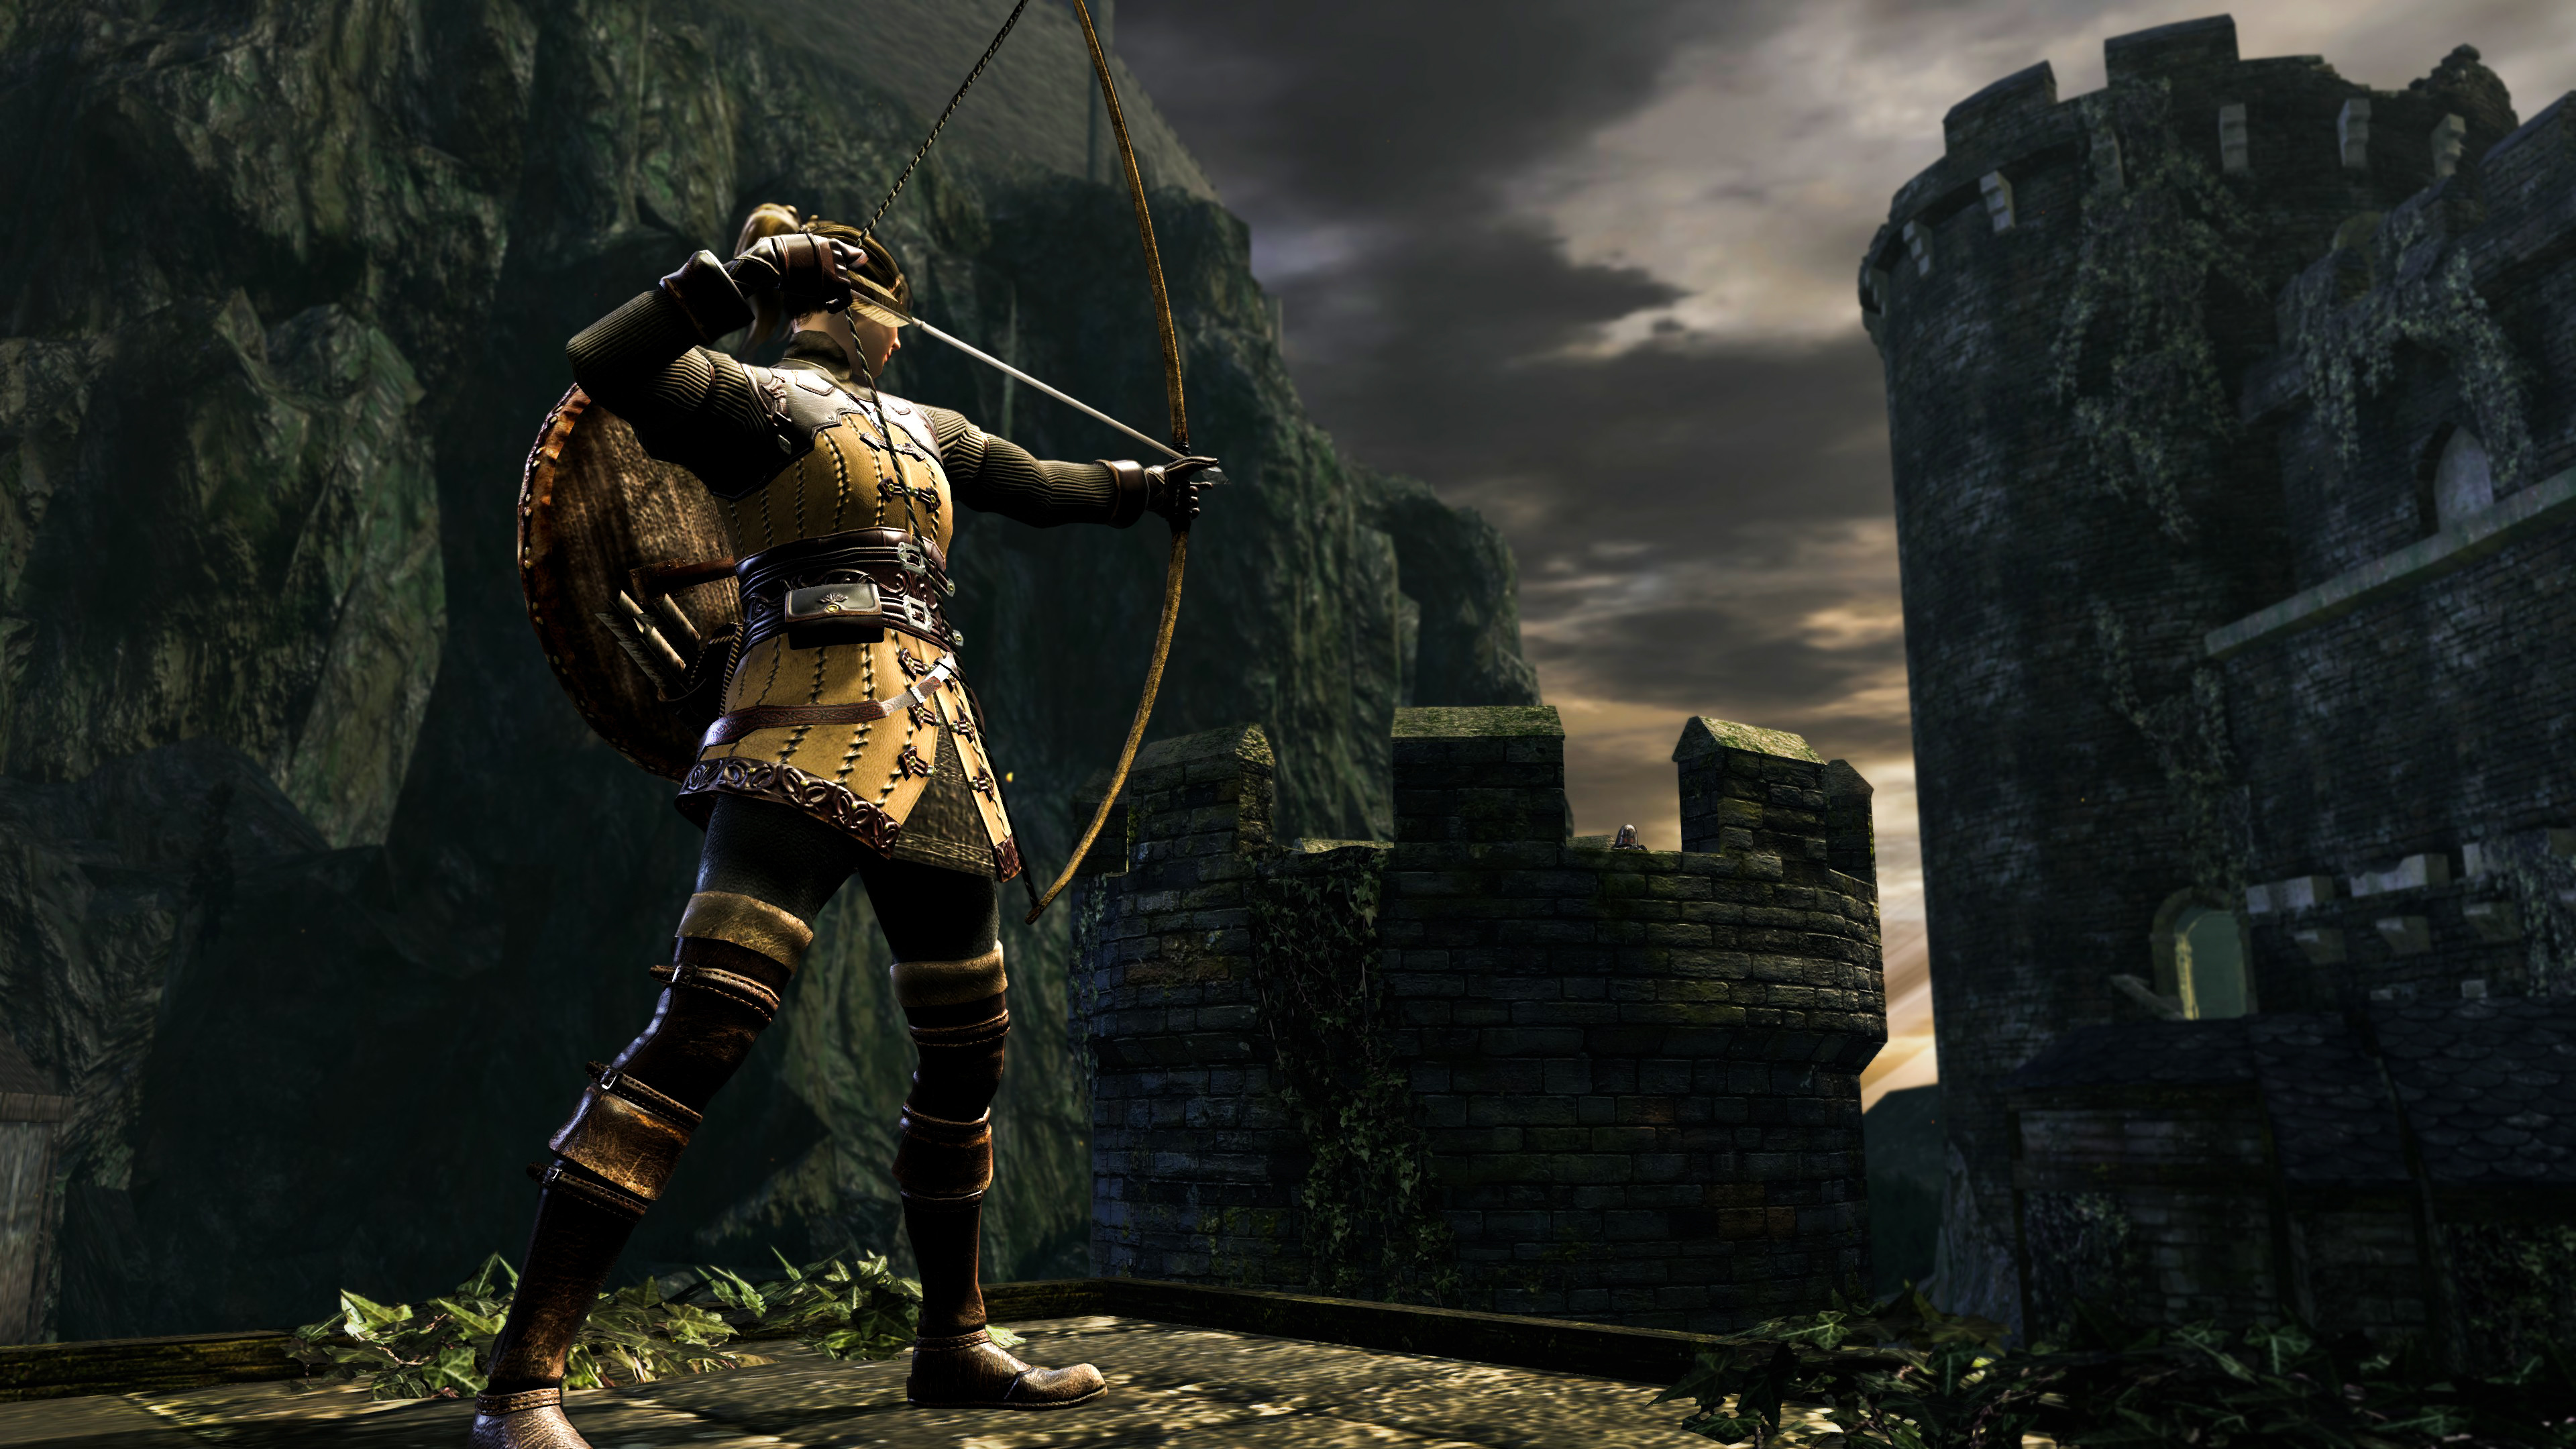 The player character stands, drawing back a long bow, in the Lower Undead Burg of Dark Souls, a collection of European-style castle towers falling to ruin.